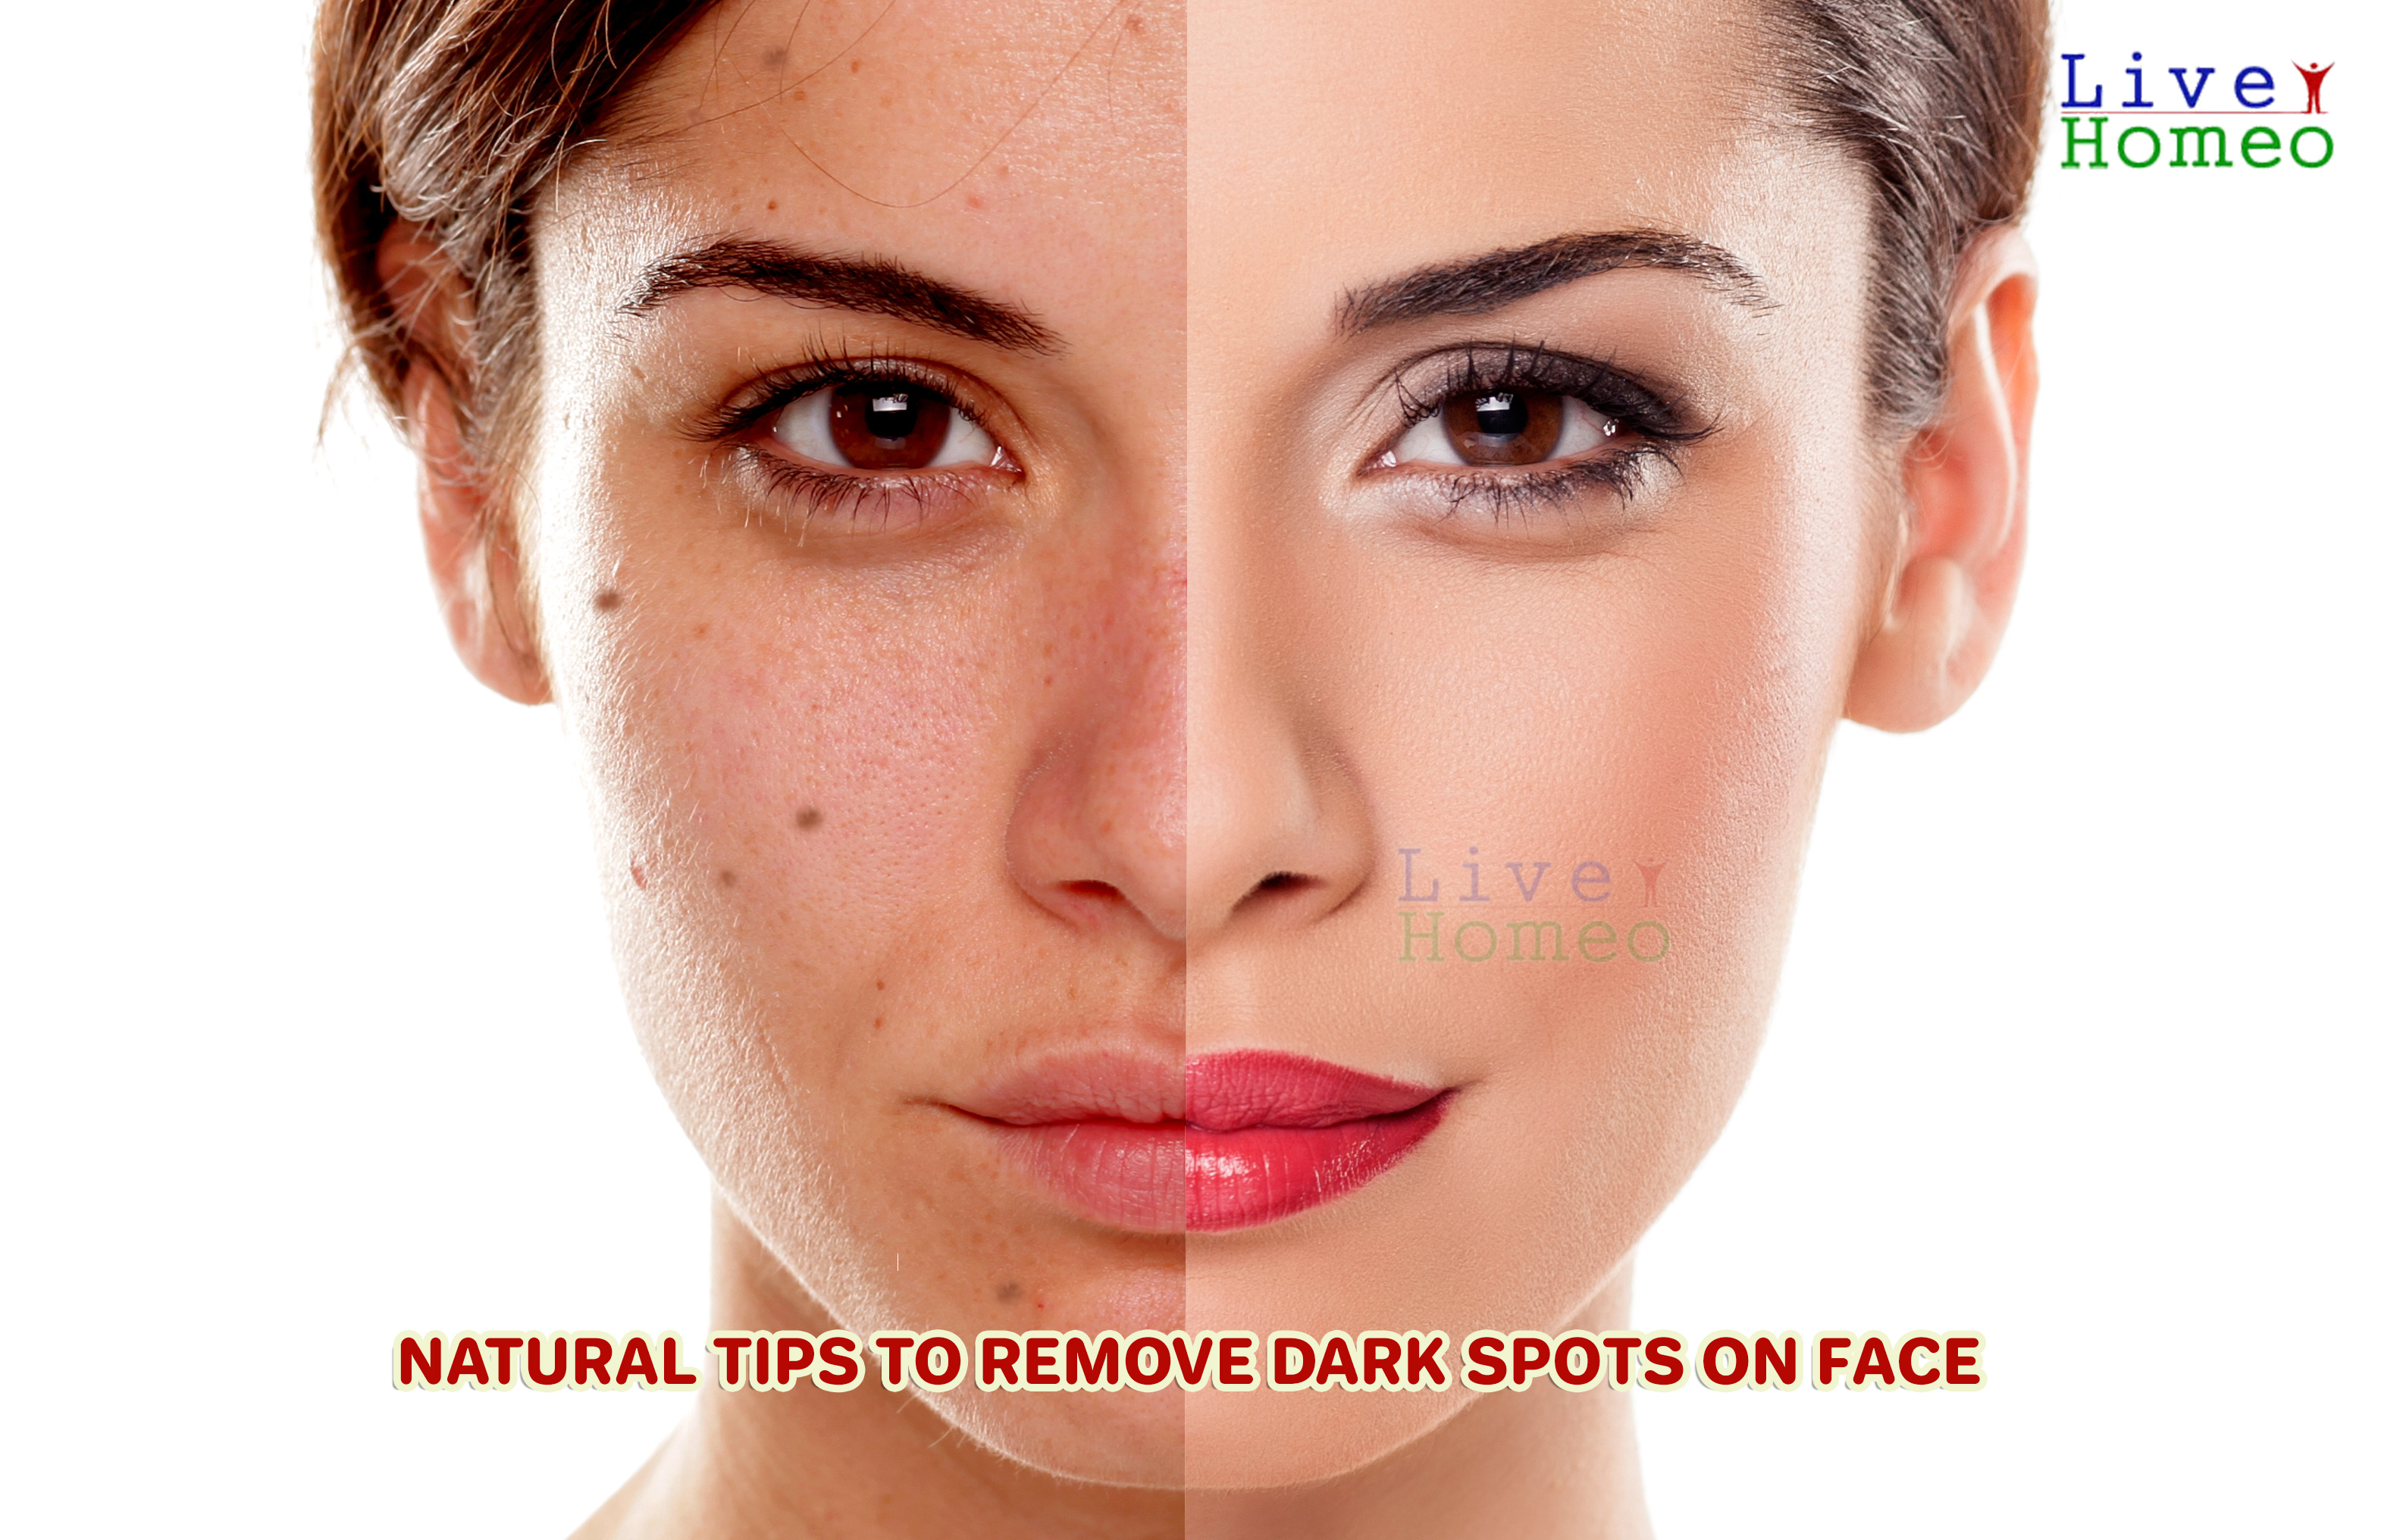 Natural tips to remove dark spots on face